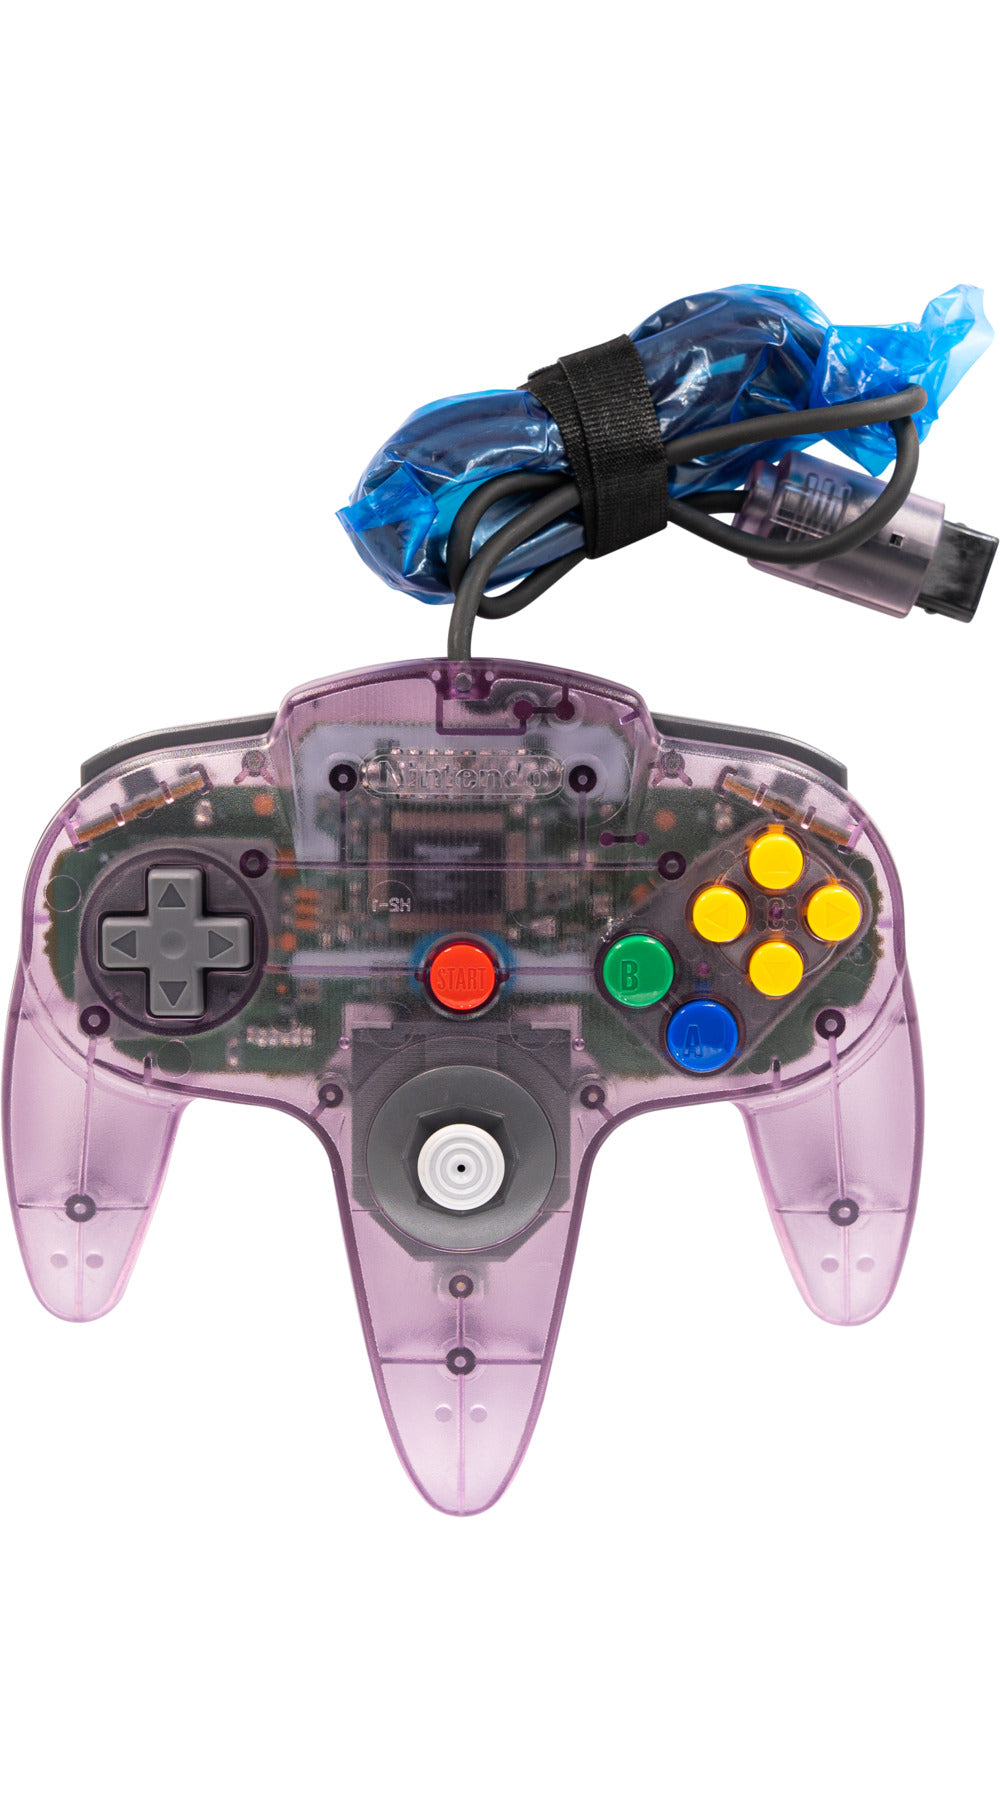 Nintendo N64 Controller Original Atomic Purple - Video Game Delivery